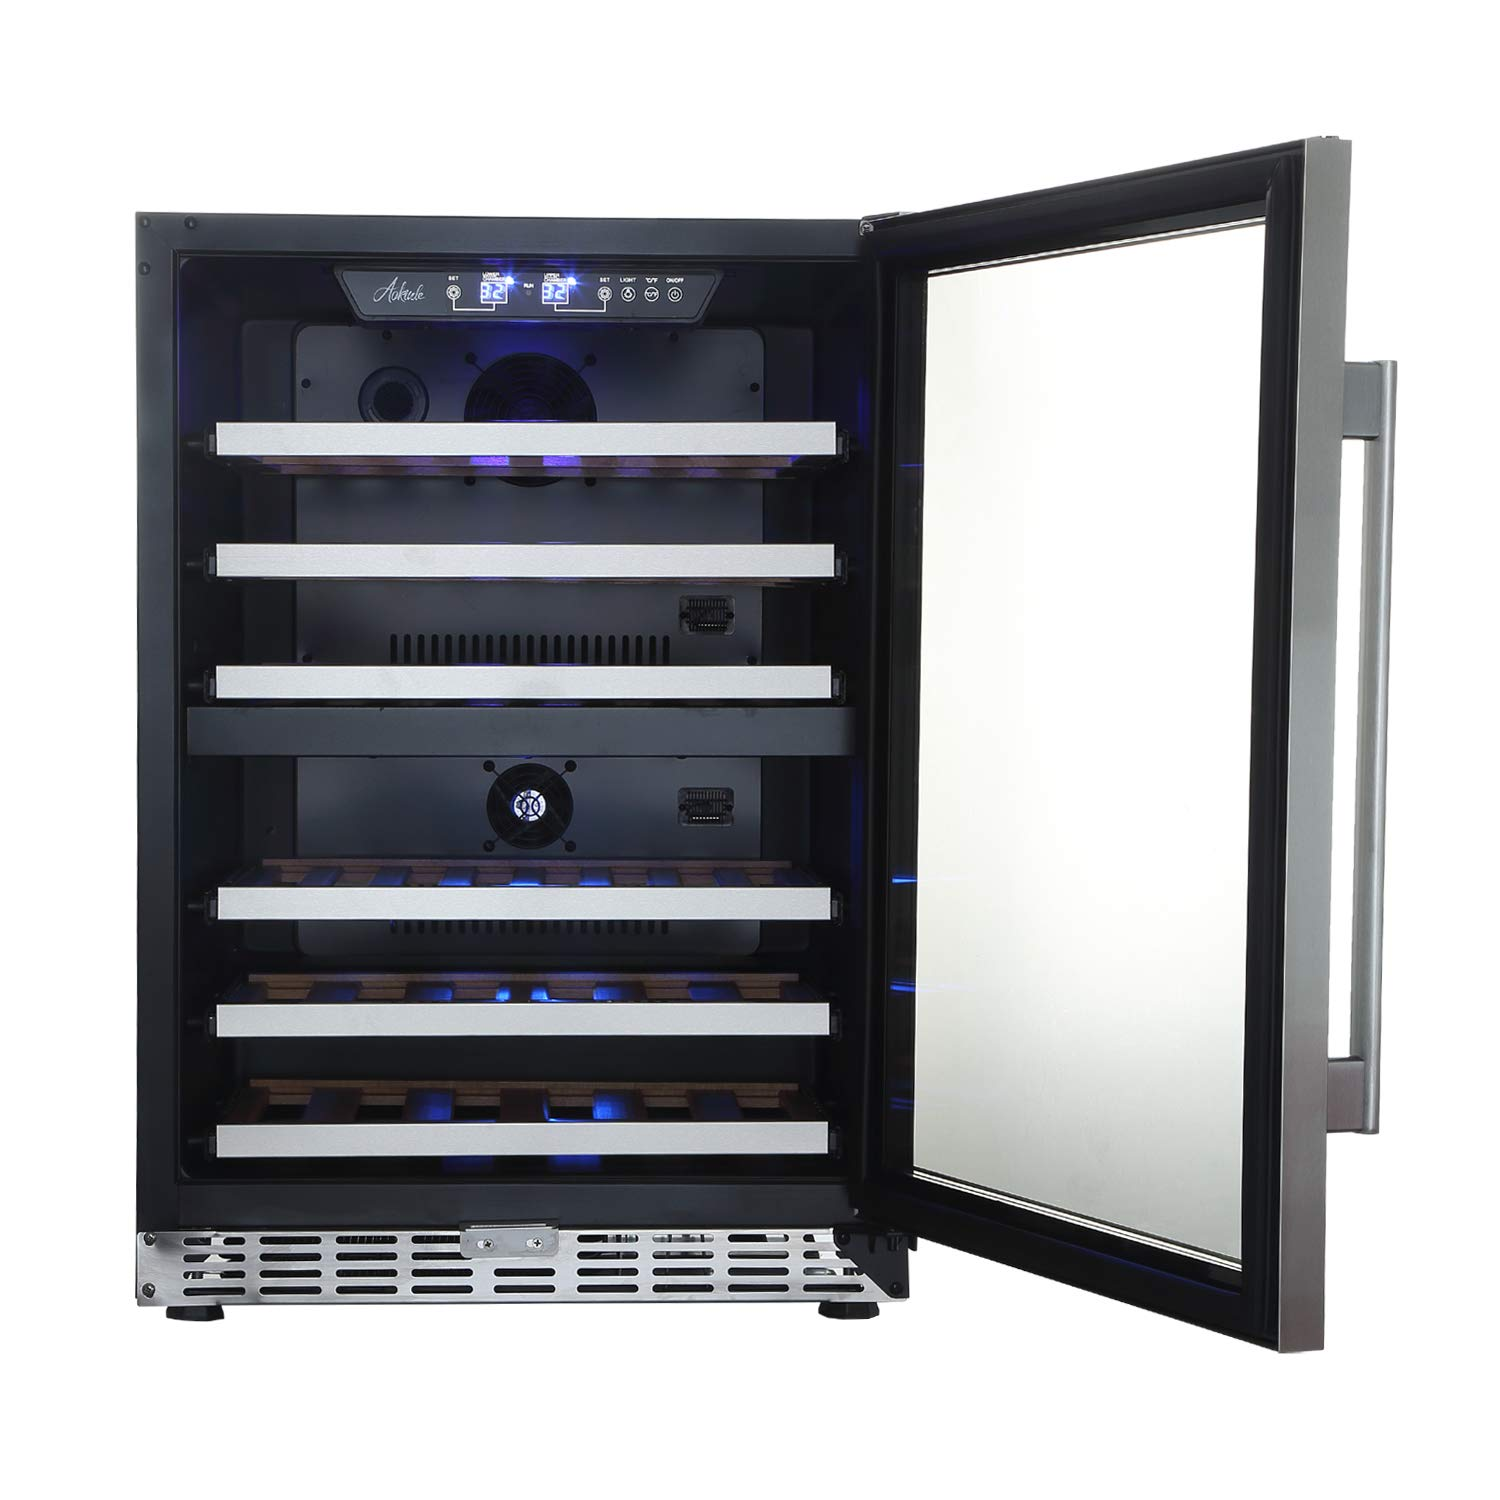 "24"" Wine Cooler 44 Bottle Built-in&Freestanding,Dual Zone Compressor Wine Refrigerator,Stainless steel&Double-Layer Tempered Glass Door,Touch Control,Temperature Memory Function"